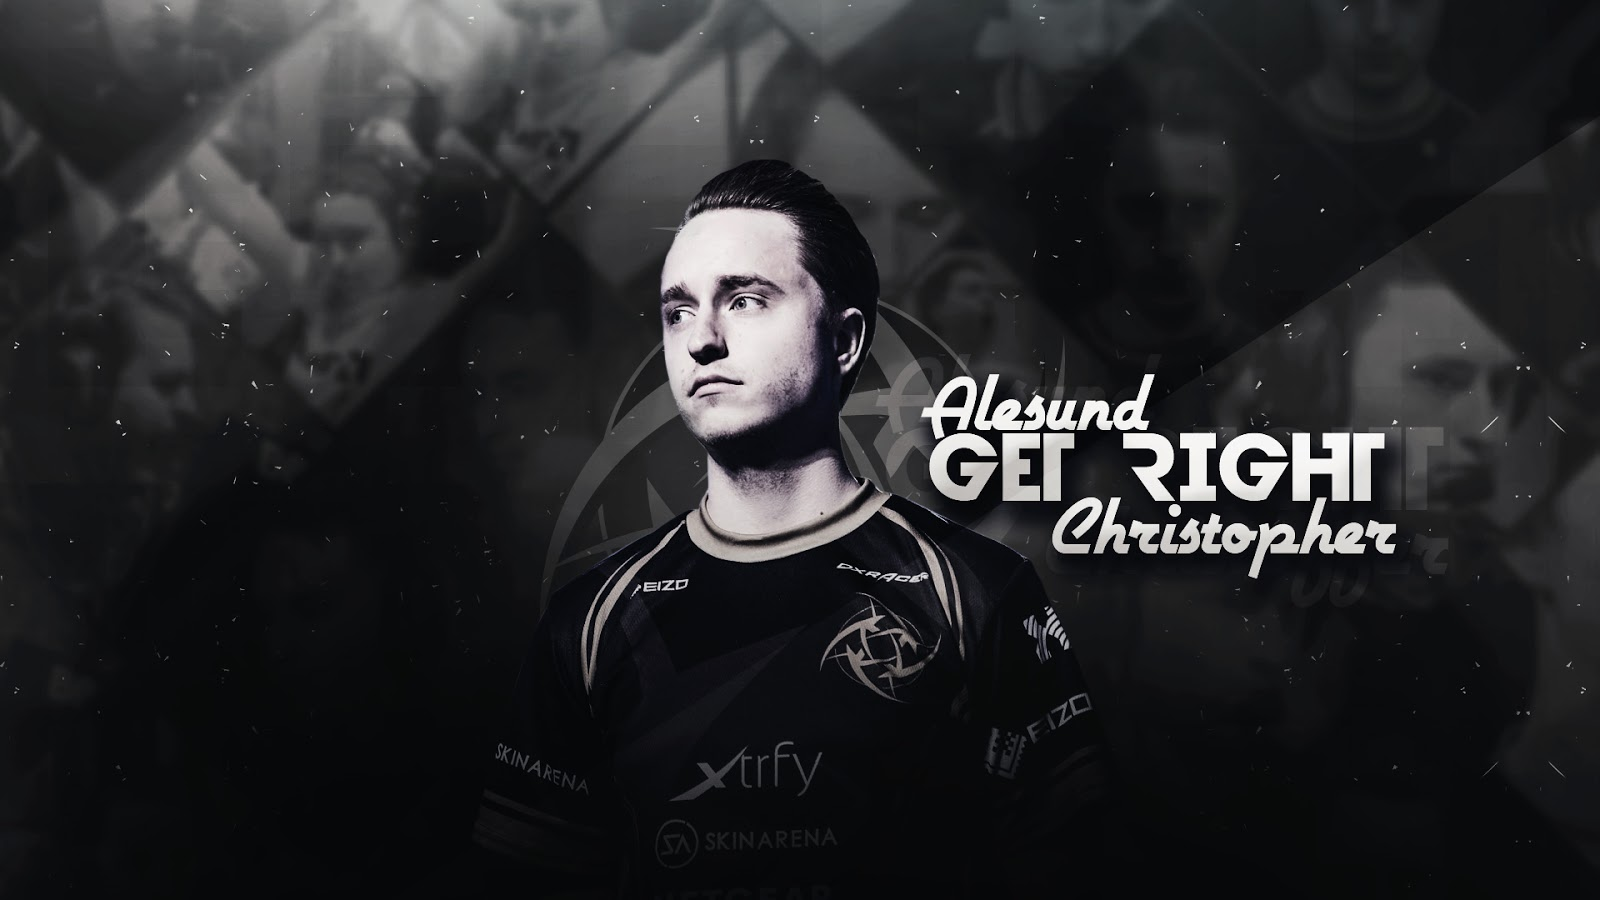 GeT_RiGhT CS:GO wallpaper 1600x900